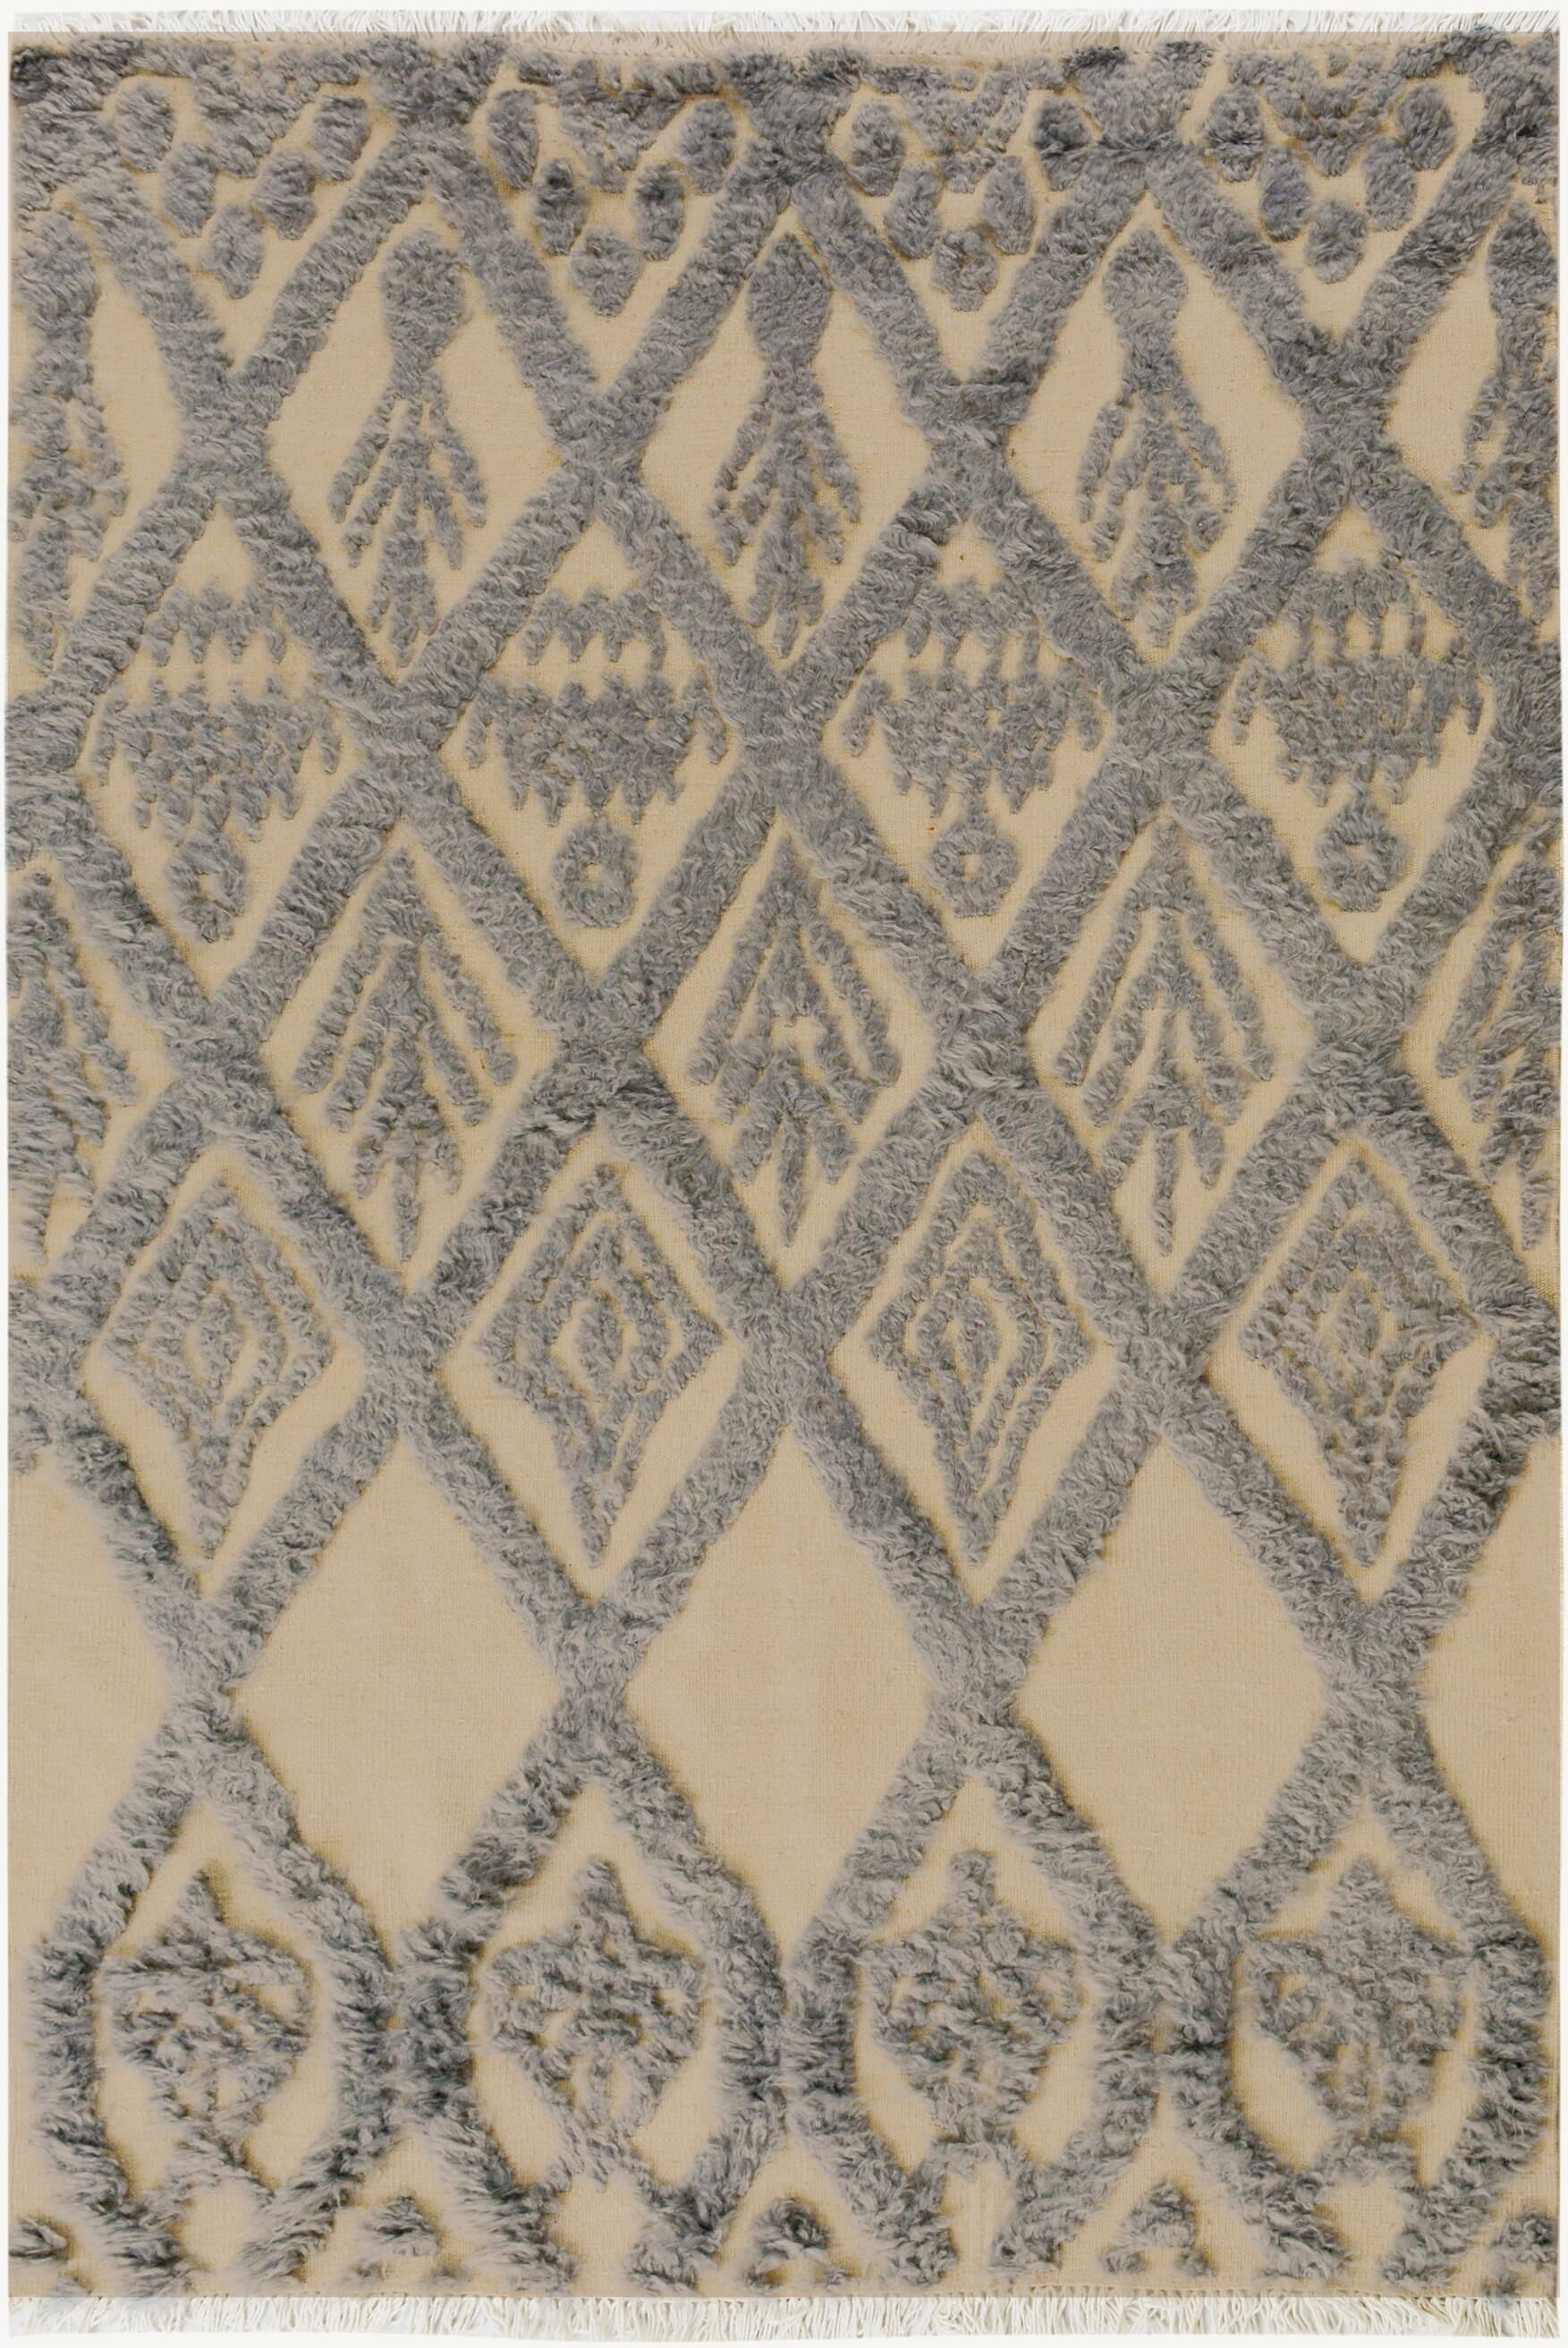 One-of-a-Kind Alastar Hand-Knotted Wool Ivory/Blue Area Rug Rug Size: Rectangle  5' x 7'